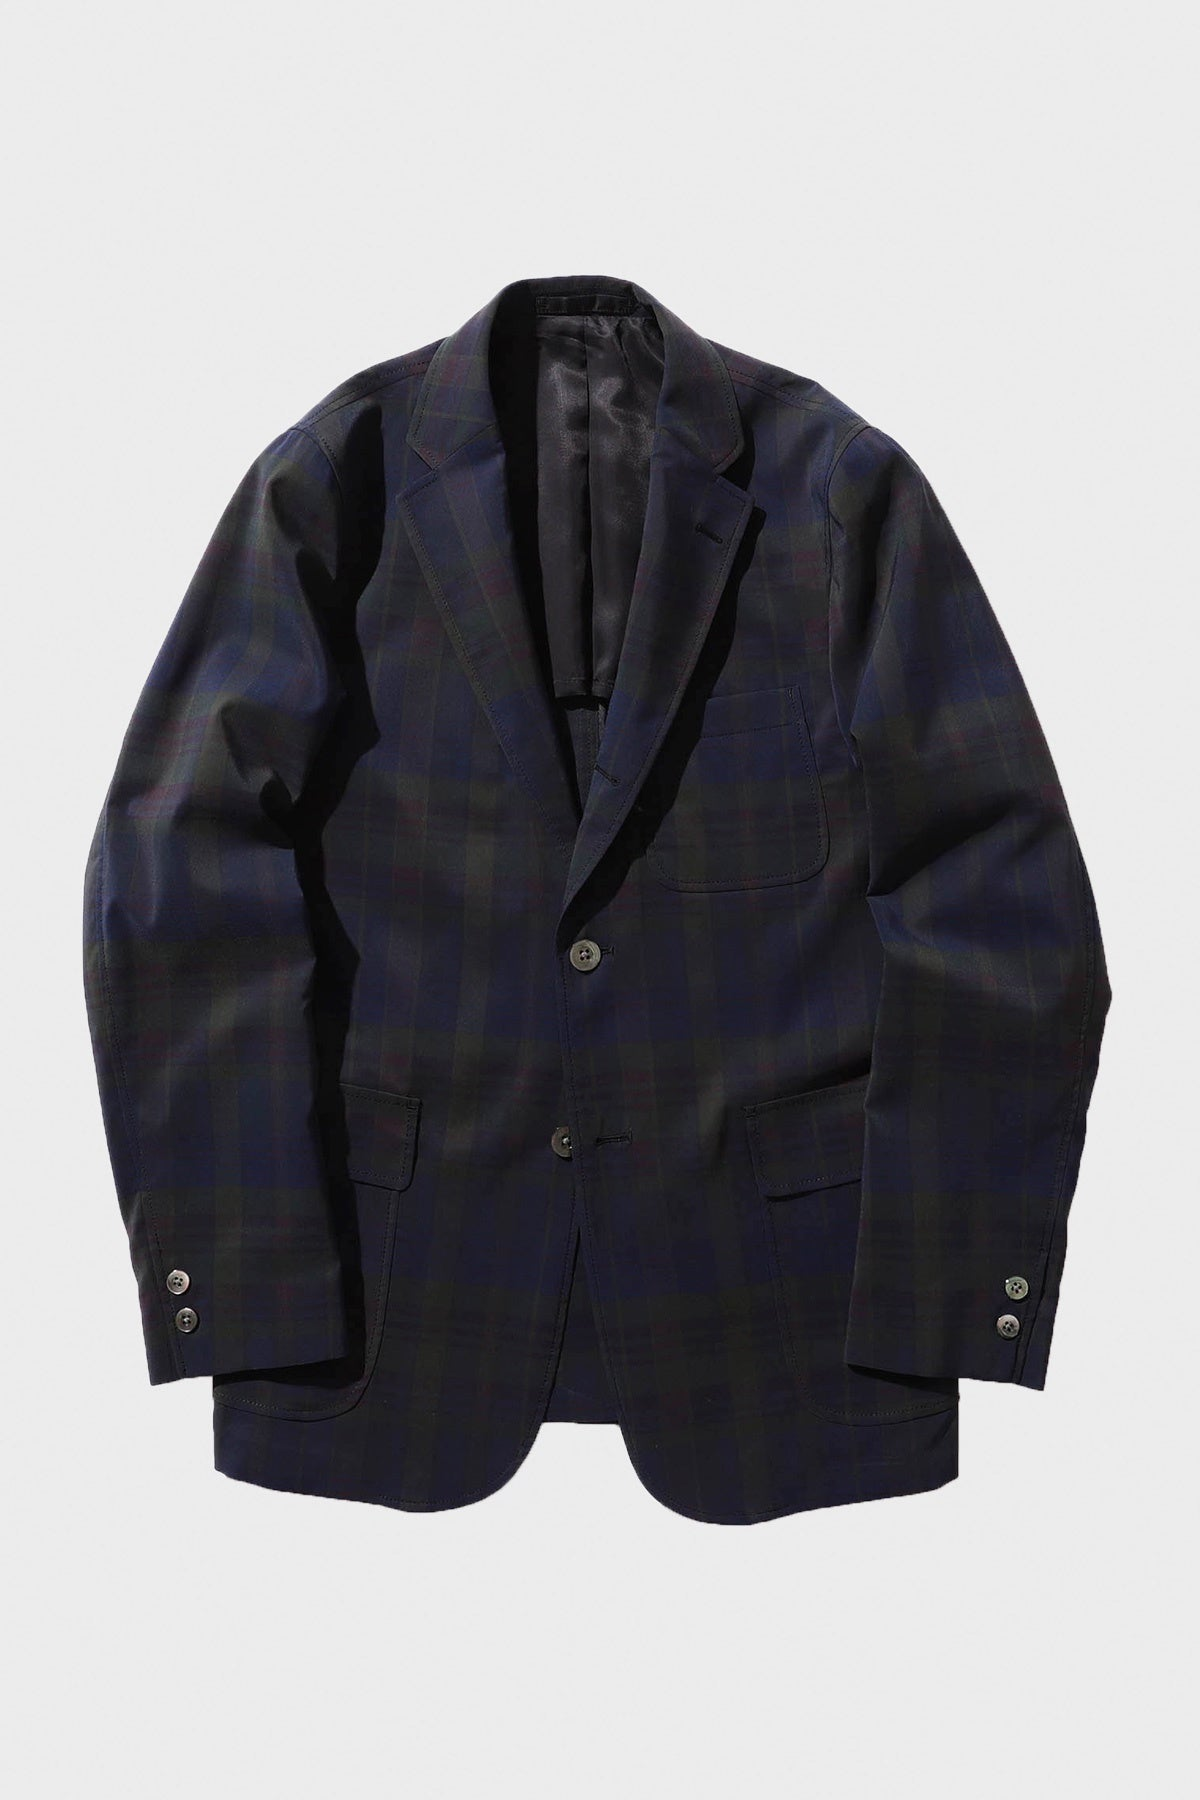 Beams Plus - 3 Button Check Jacket - Navy - Canoe Club